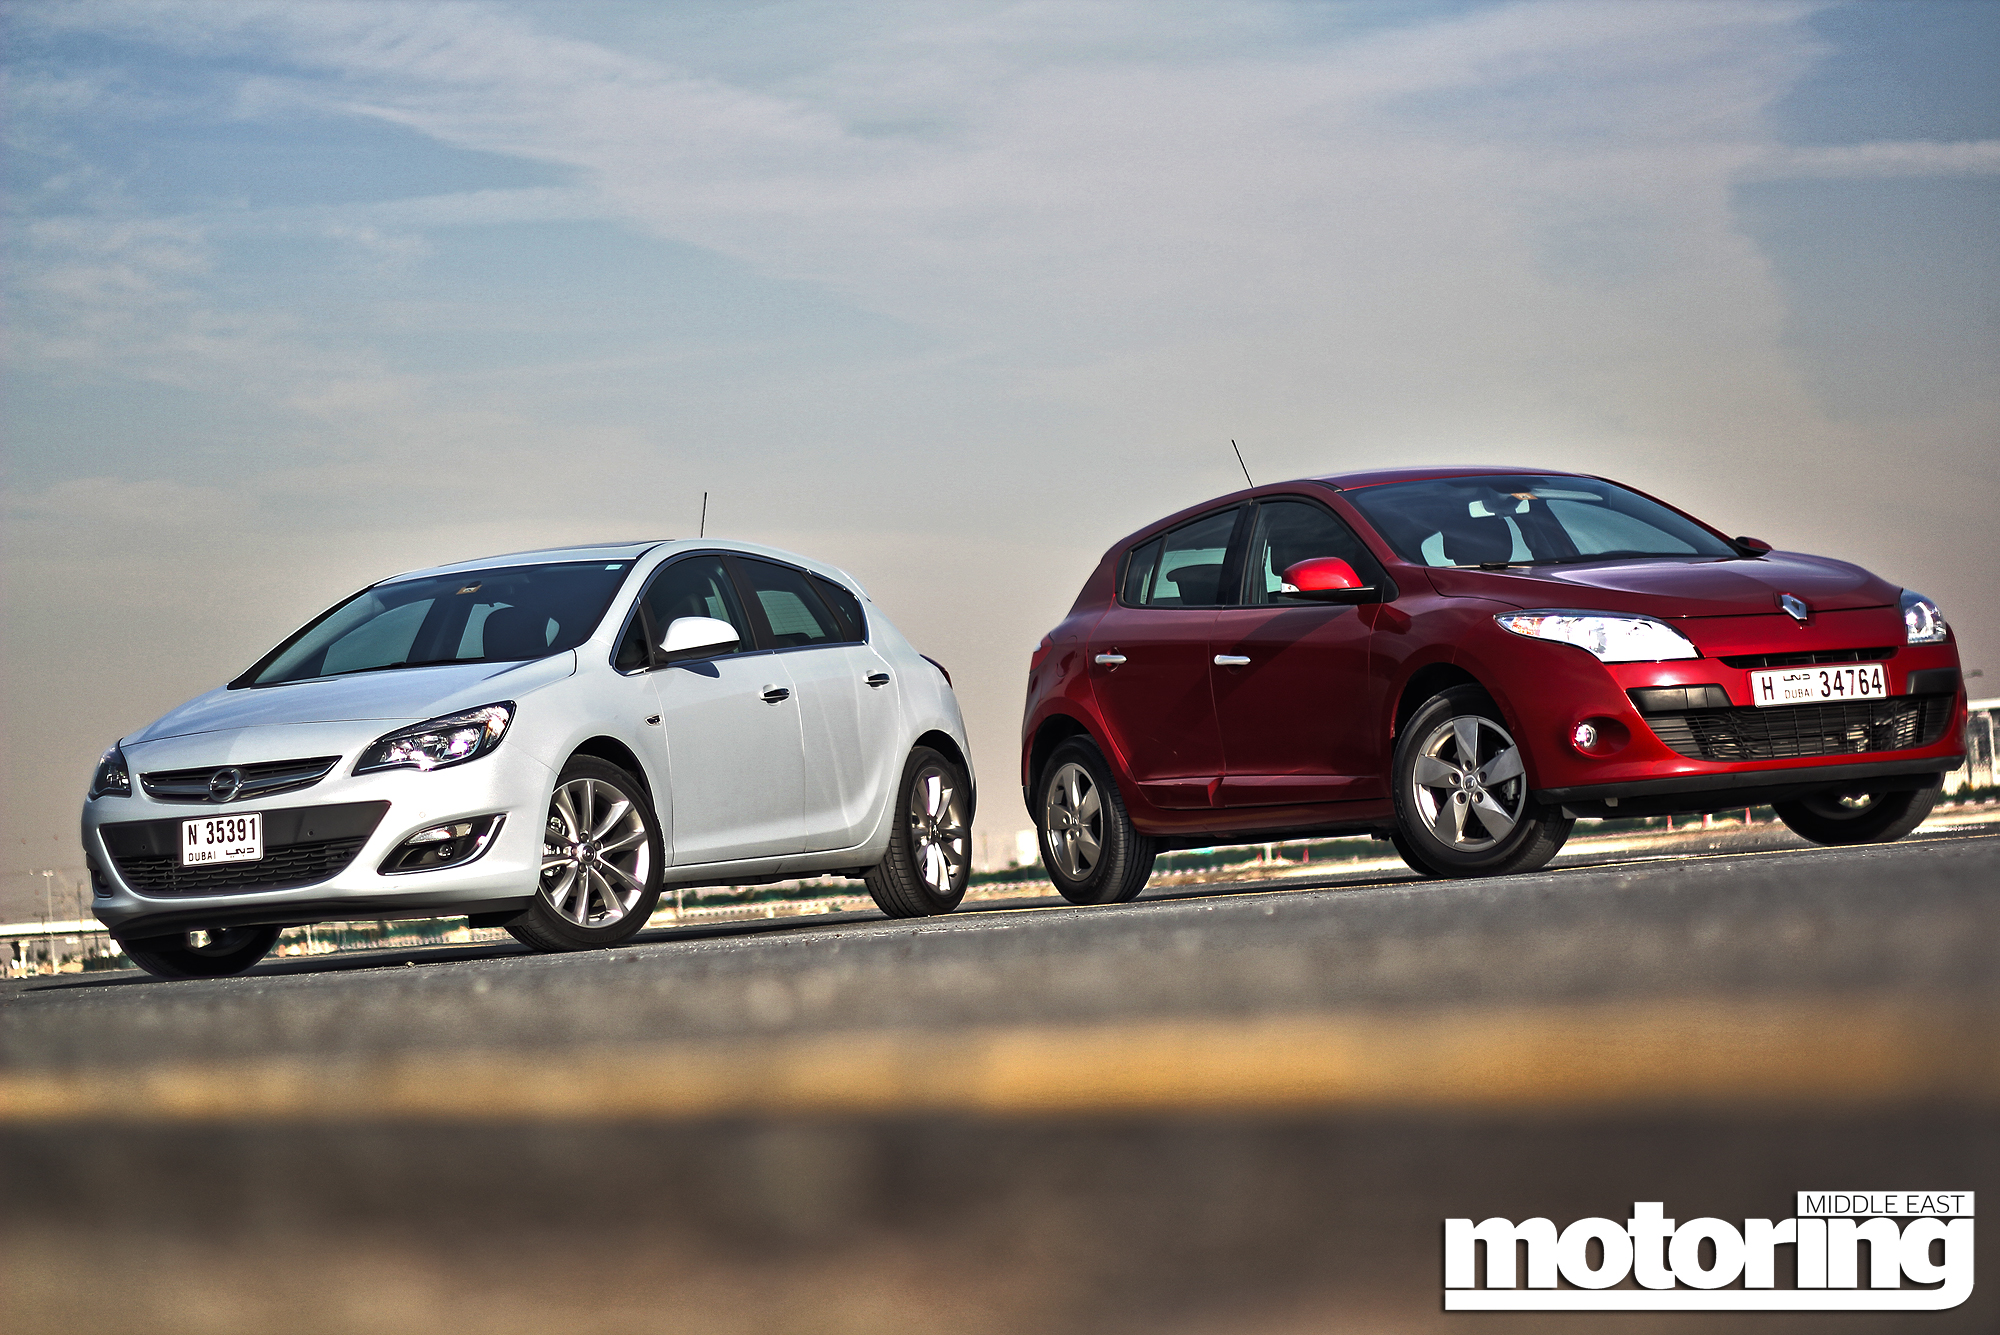 Twin Test Opel Astra Vs Renault Megane Motoring Middle East Car News Reviews And Buying Guidesmotoring Middle East Car News Reviews And Buying Guides